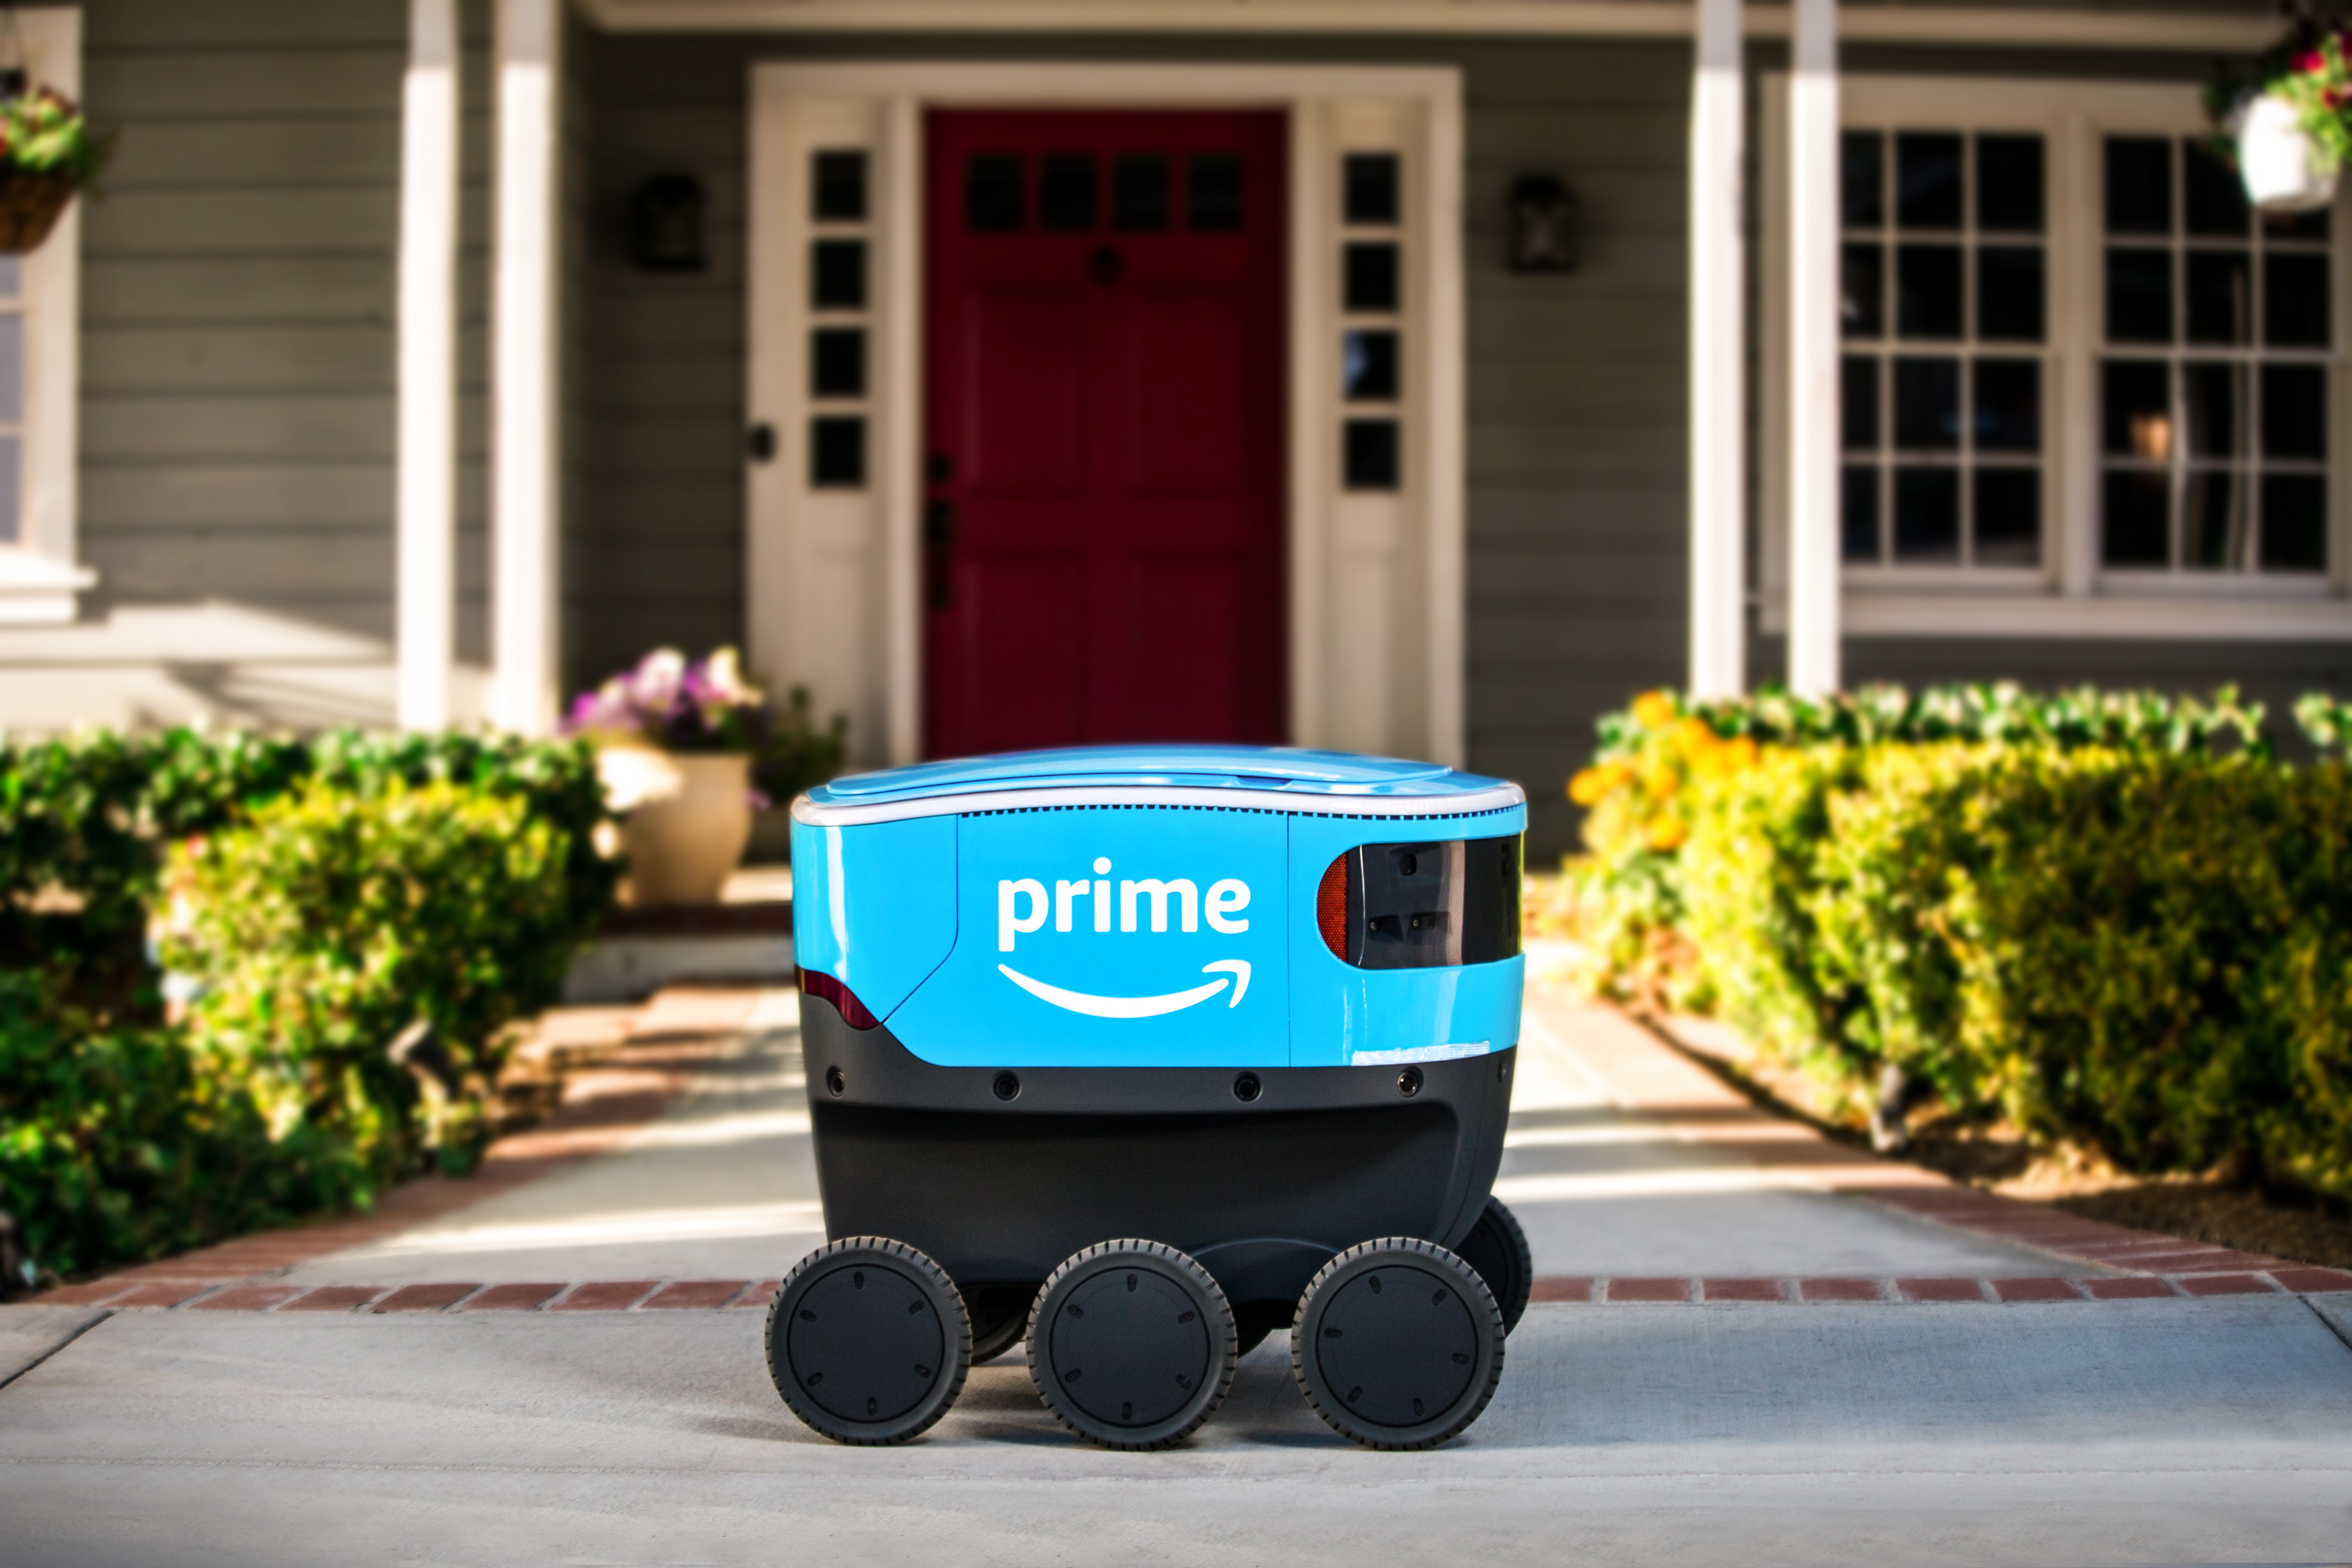 Amazon Prime Scout future car article